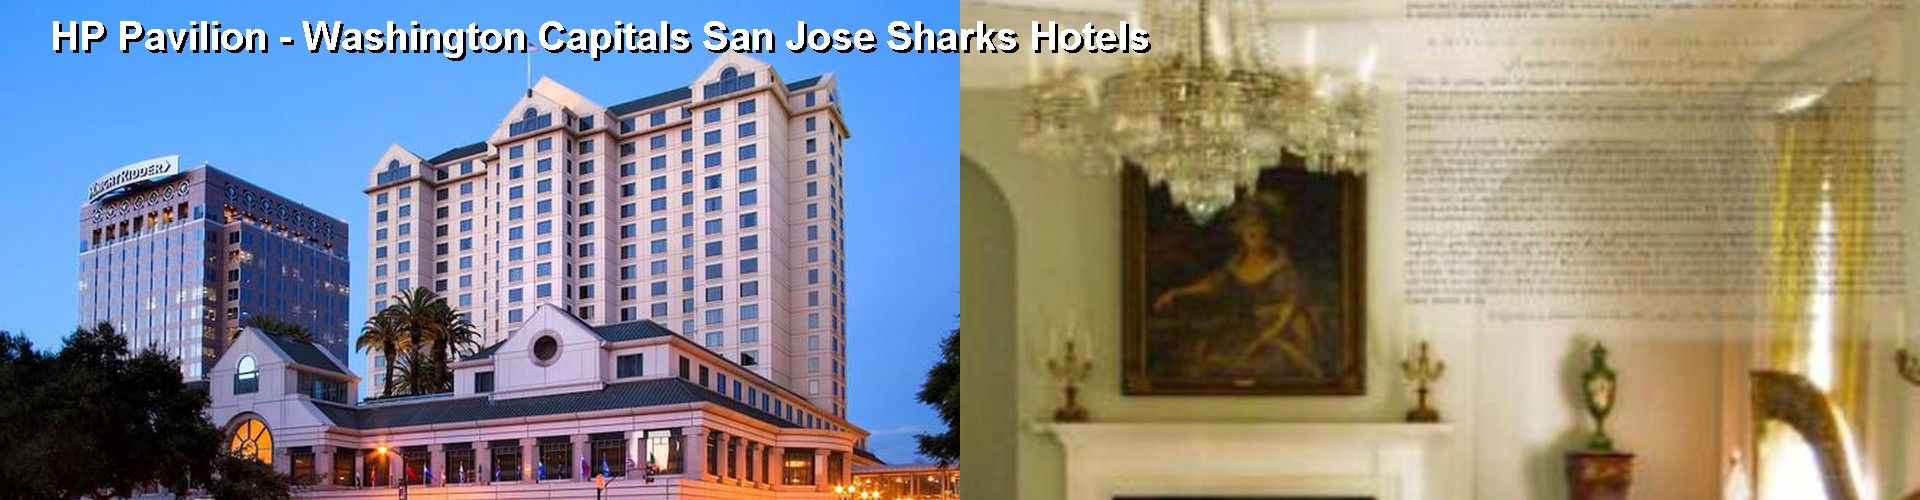 5 Best Hotels near HP Pavilion - Washington Capitals San Jose Sharks